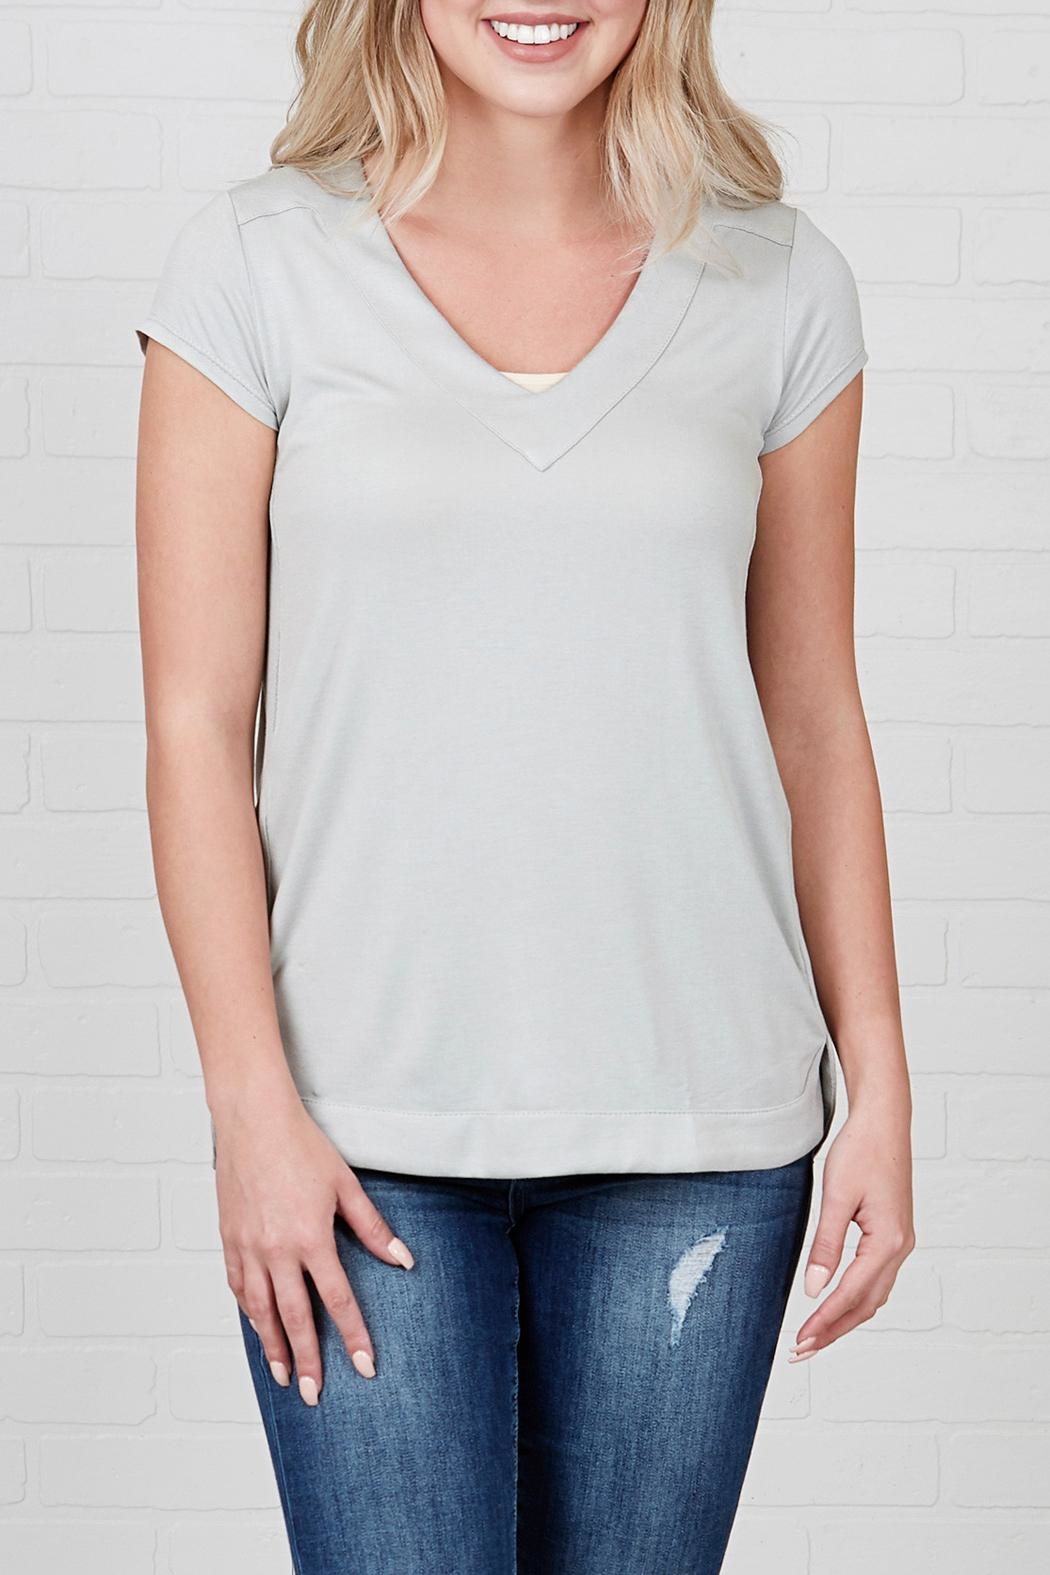 Downeast Basics Grey Scripted Top - Main Image